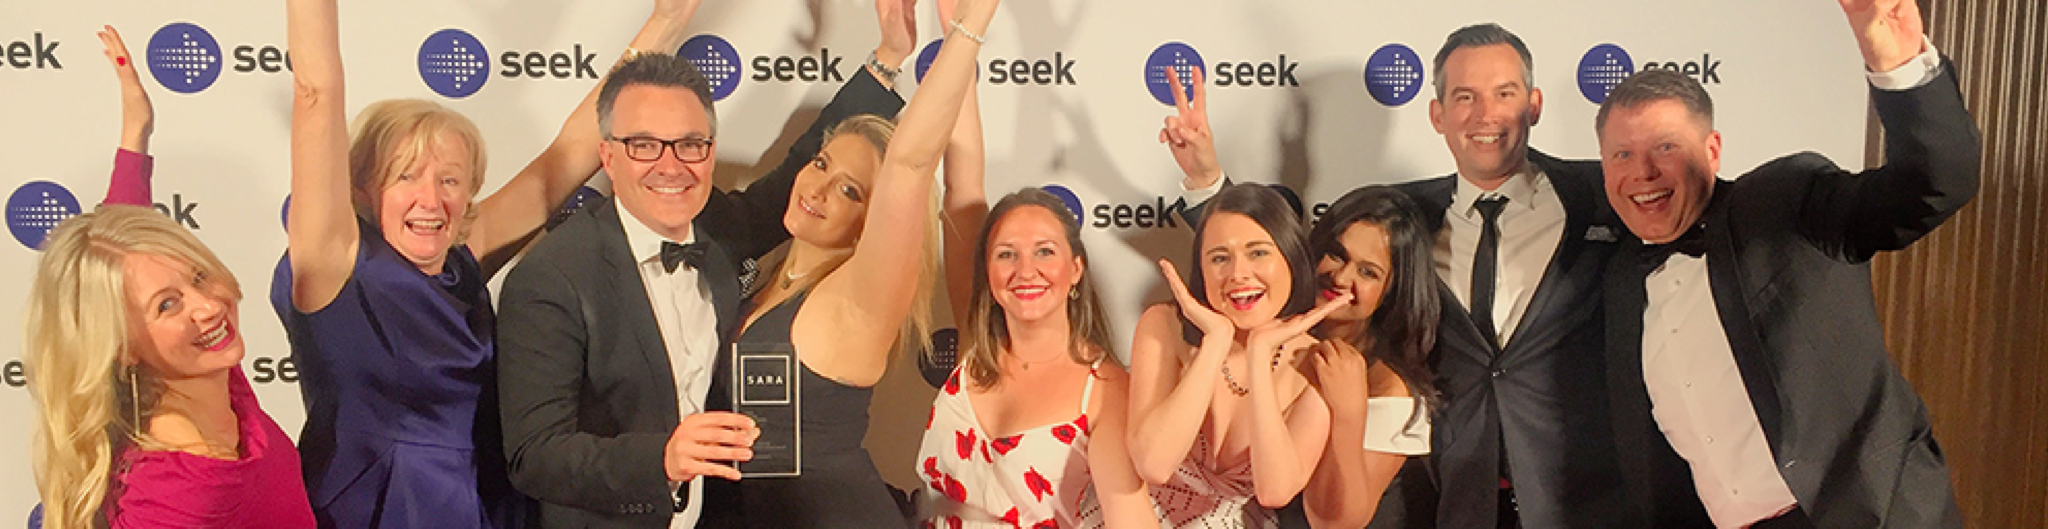 M&T wins SEEK Award for Candidate Engagement